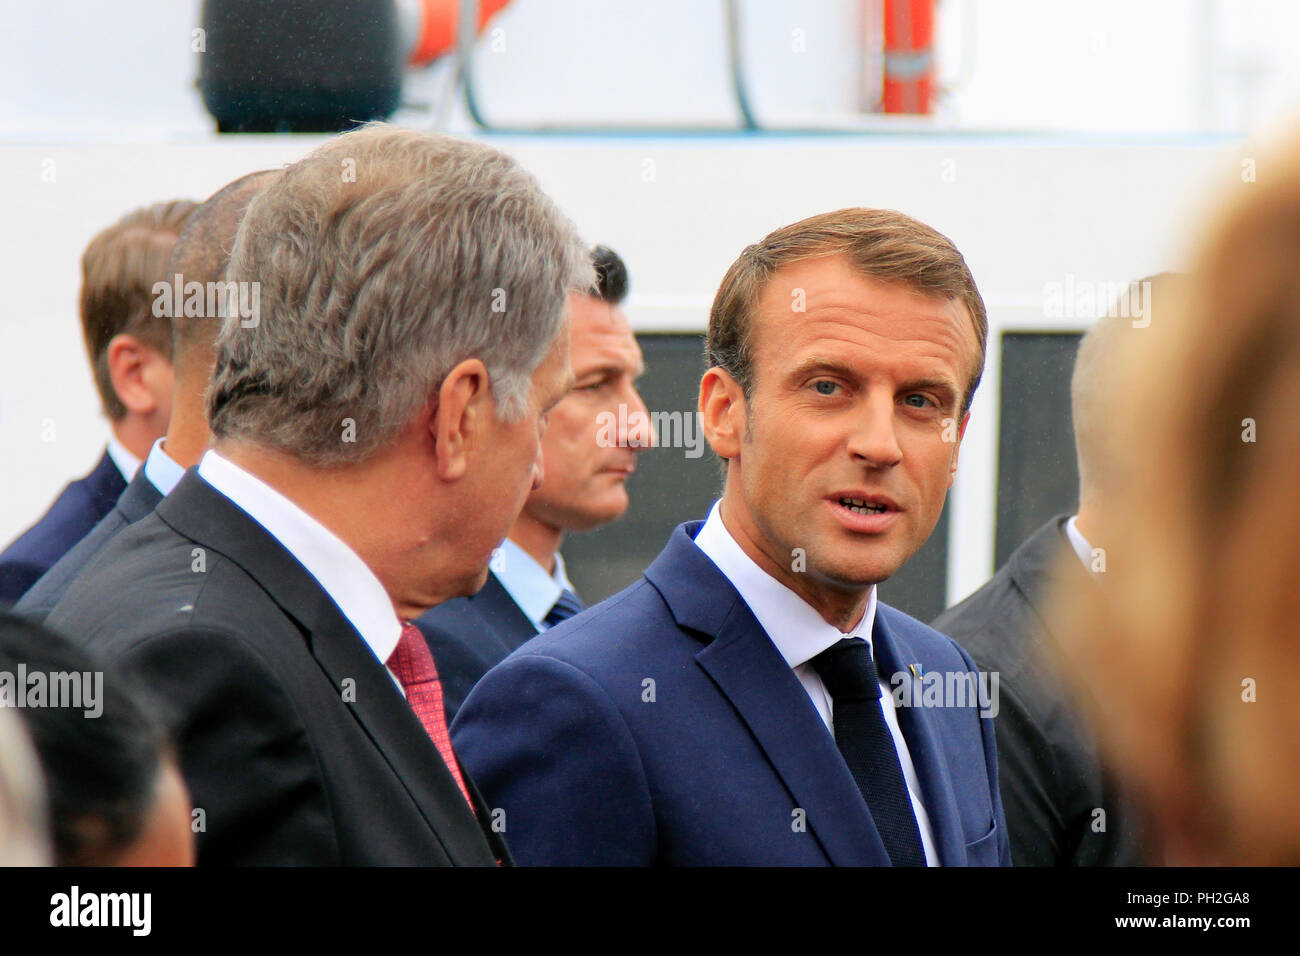 Helsinki, Finland. August 30, 2018. Finnish President Sauli Niinistö (L) and French President Emmanuel Macron (R) take a walk on the Market Square after their joint press conference. Credit: Taina Sohlman/Alamy Live News - Stock Image